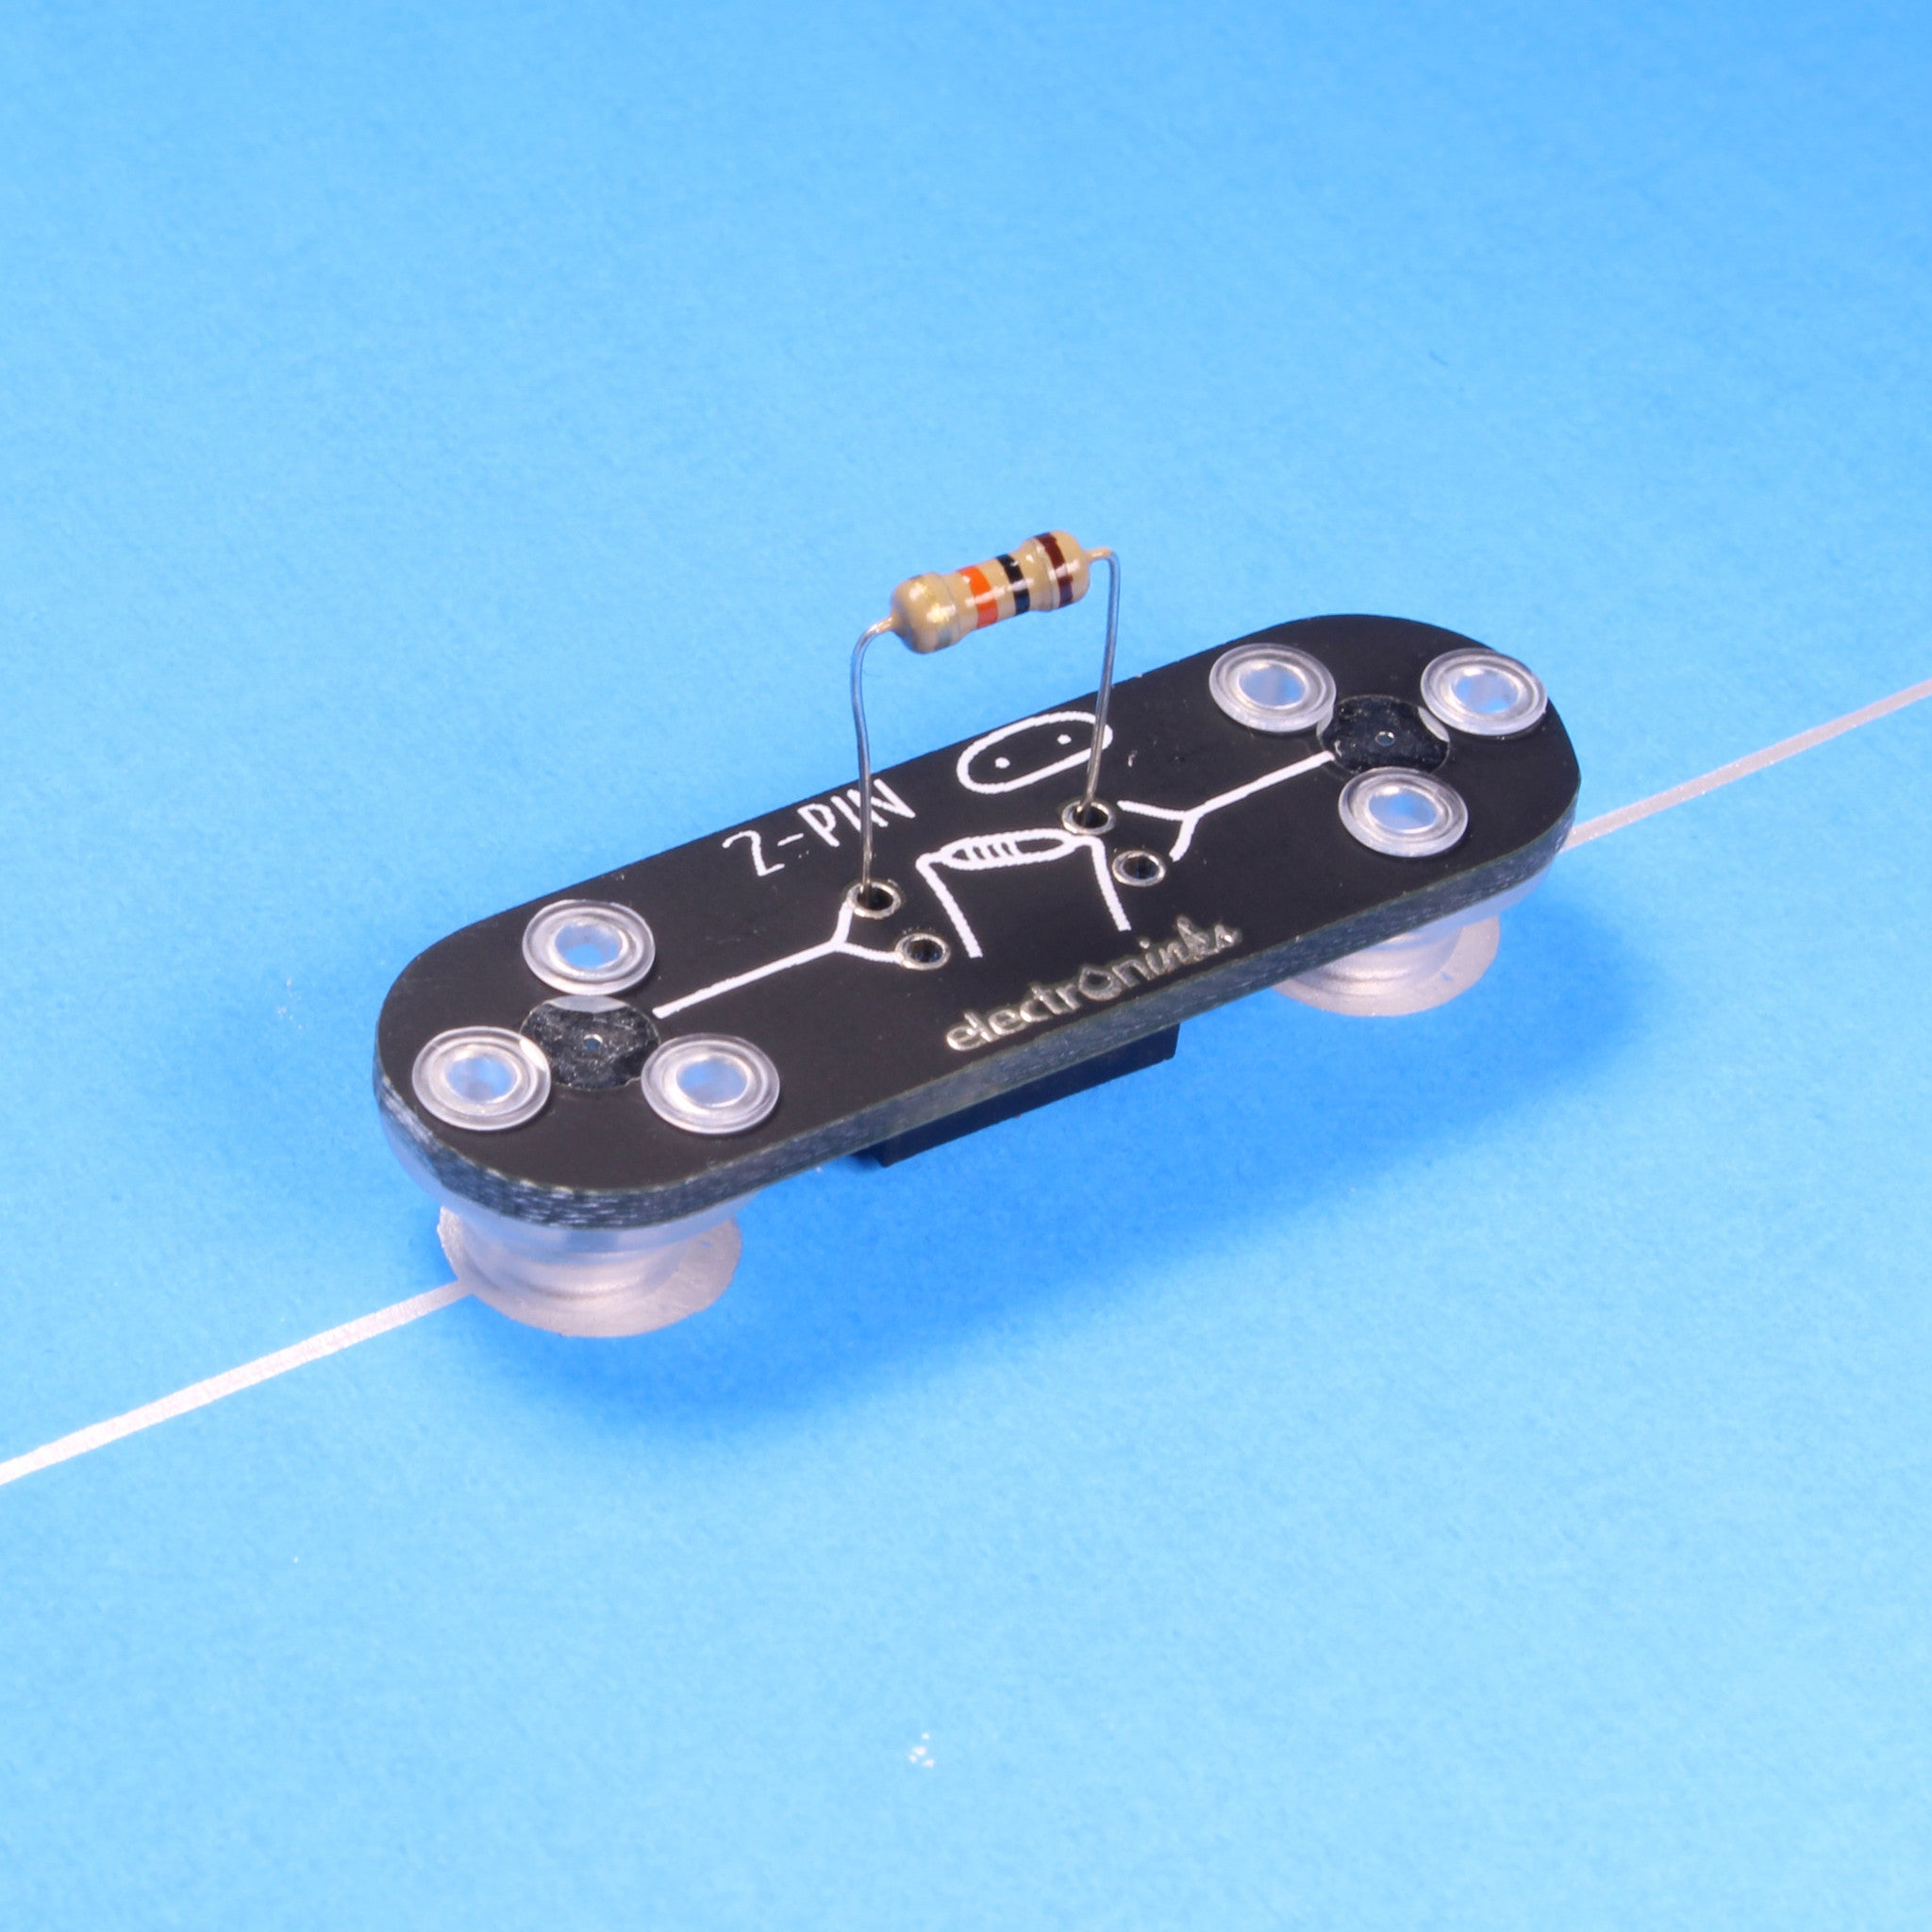 A DIY Connector Circuit Scribe module with resistors on conductive ink circuit.